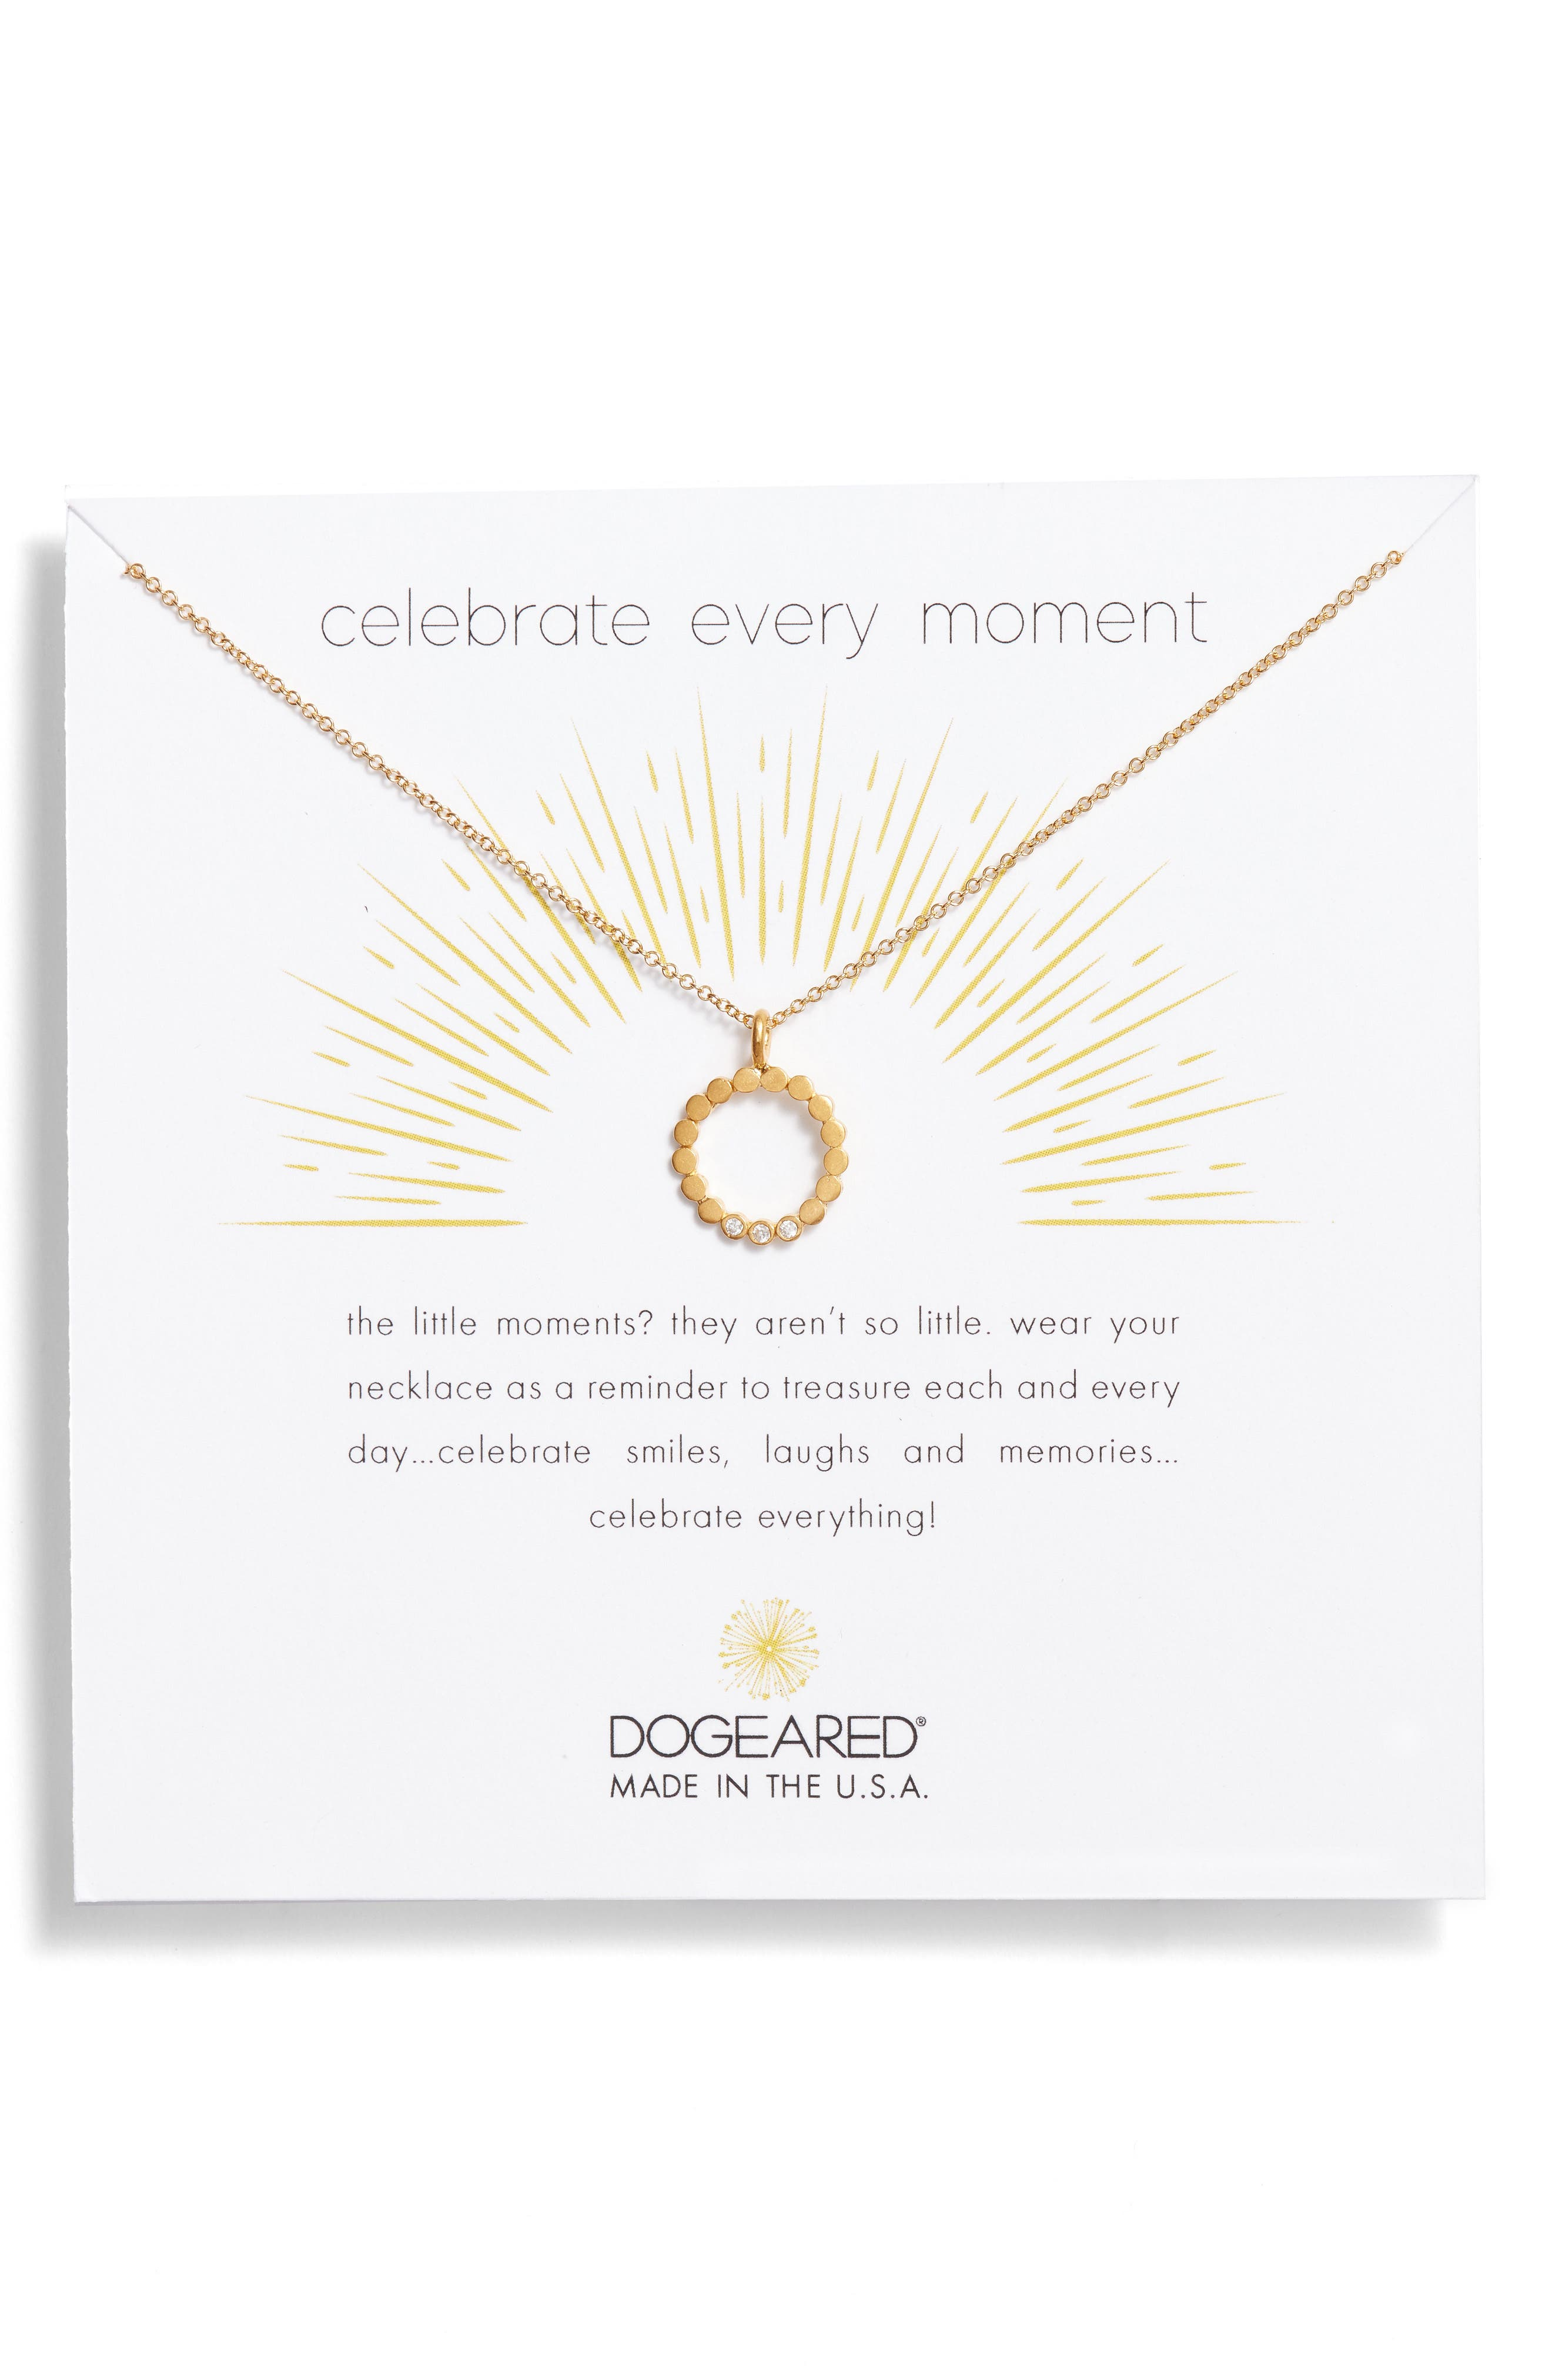 Alternate Image 1 Selected - Dogeared Celebrate Every Moment Pendant Necklace